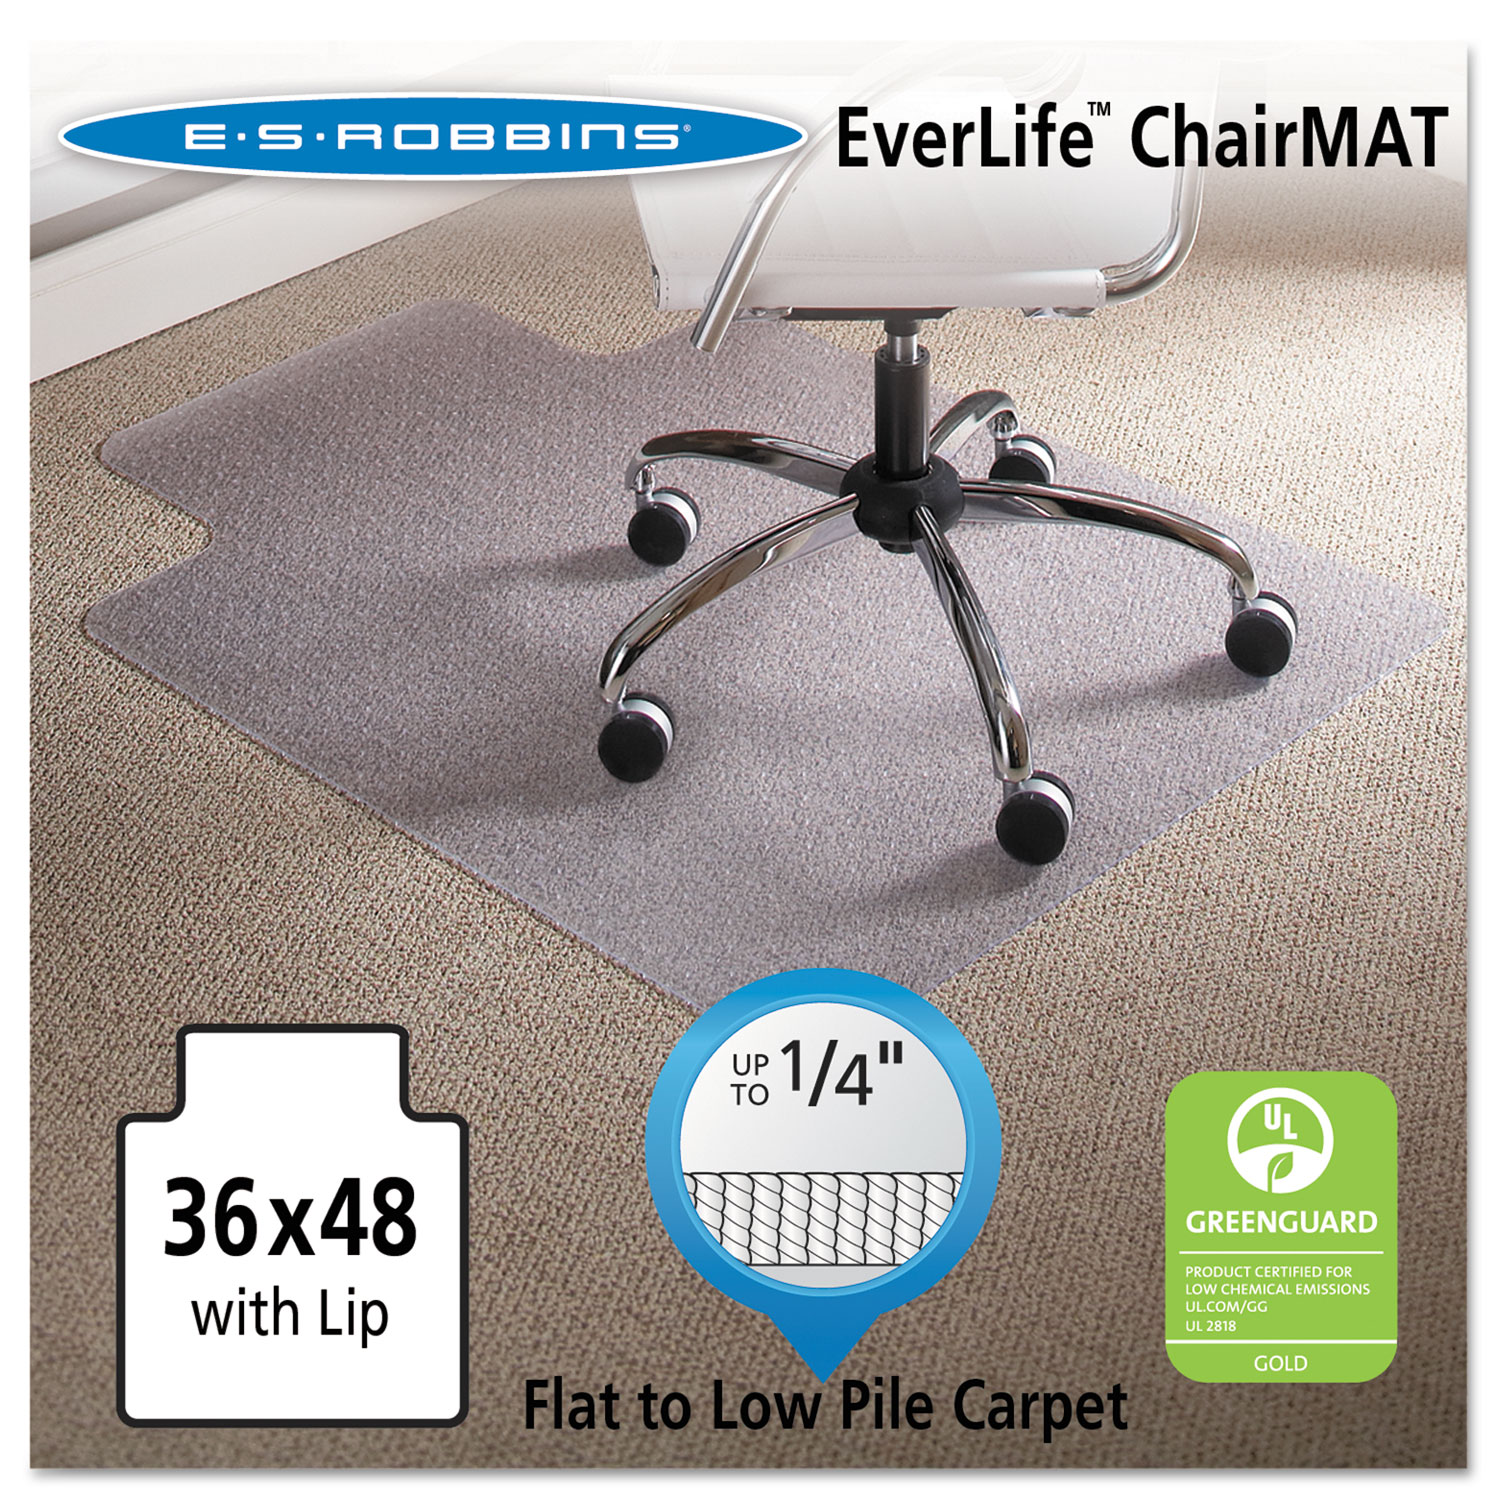 36 x 48 lip chair mat by es robbinsa esr120023 ontimesupplies com